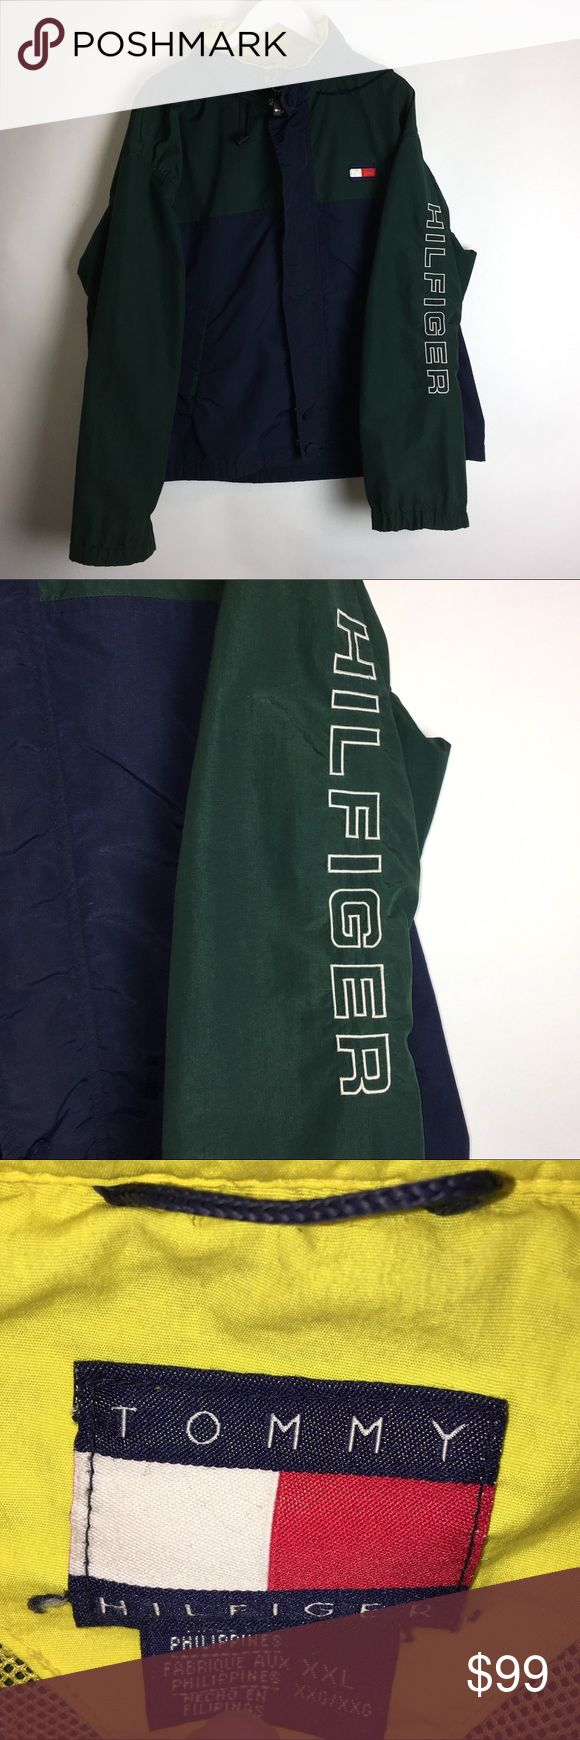 Vintage Tommy Hilfiger Men's Hoodie Jacket XXL ITEM DESCRIPTION Brand: Tommy Hilfiger Item name: Men's Vintage Spell Out Hoodie ZiP Up jacket   Color: Multi-Color Condition: This is a pre-owned item. It is in in excellent used condition with no stains, rips, holes, etc. Comes from a smoke free household. Size: Men's XXL Measurements: Pit to Pit - 28 1/2 inches Shoulder to bottom - 26 inches Tommy Hilfiger Jackets & Coats Windbreakers